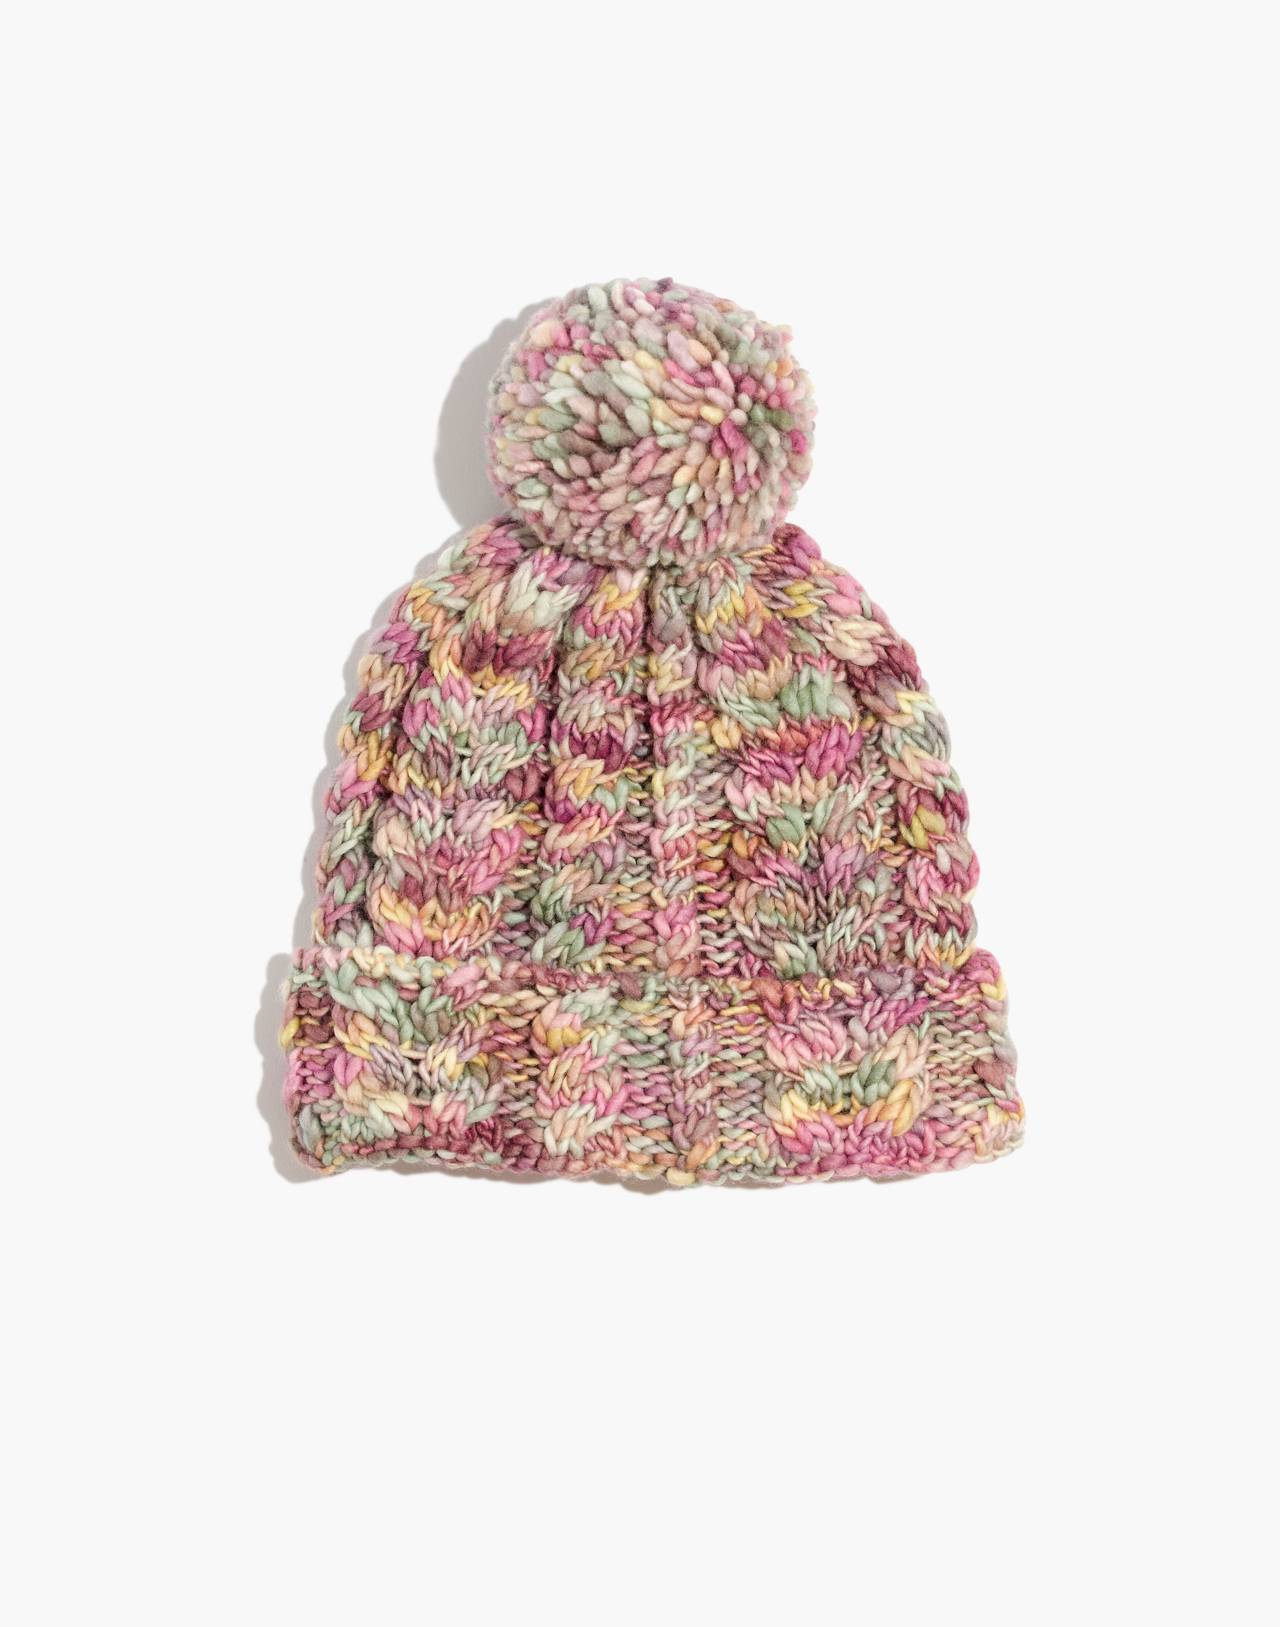 Madewell x Manos Del Uruguay Space-Dyed Cableknit Pom-Pom Beanie in pink space image 1